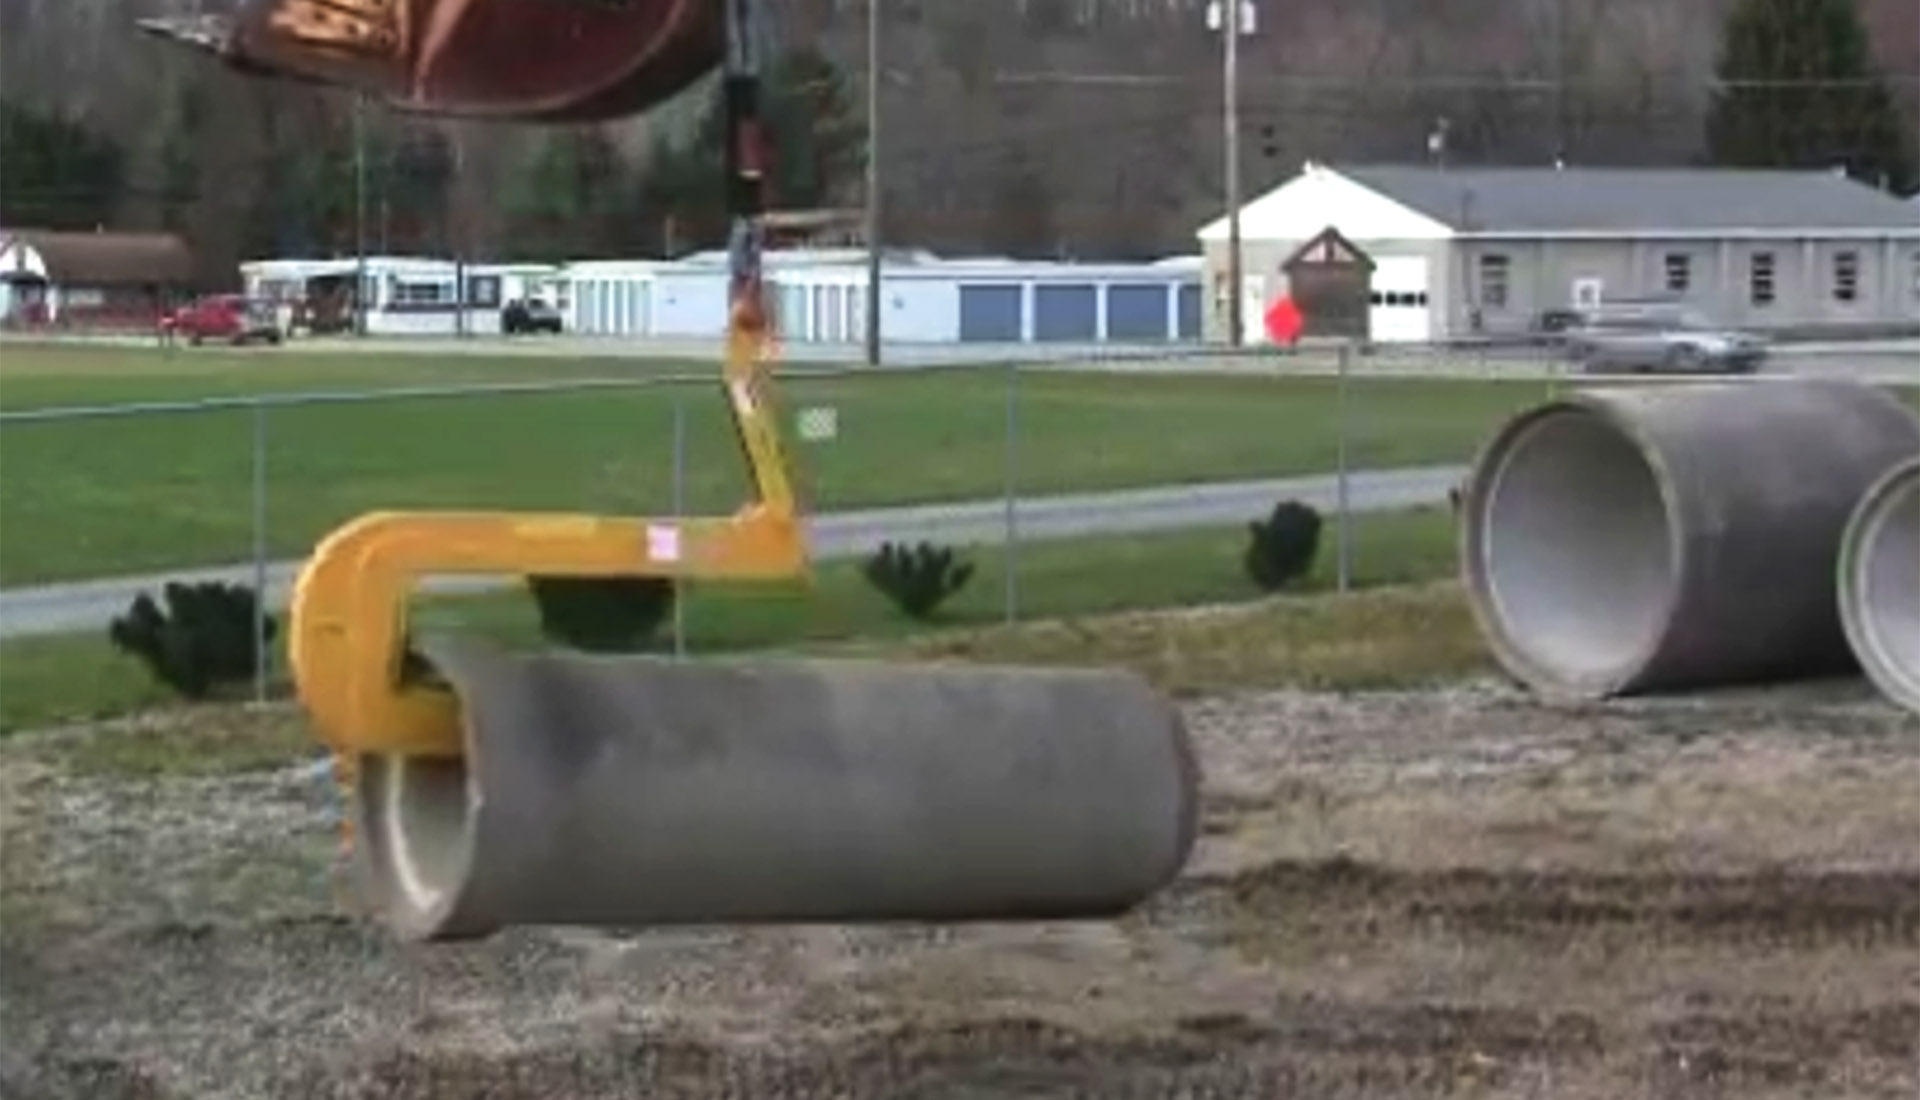 Self Leveling Pipe Hook in Yard Demonstration